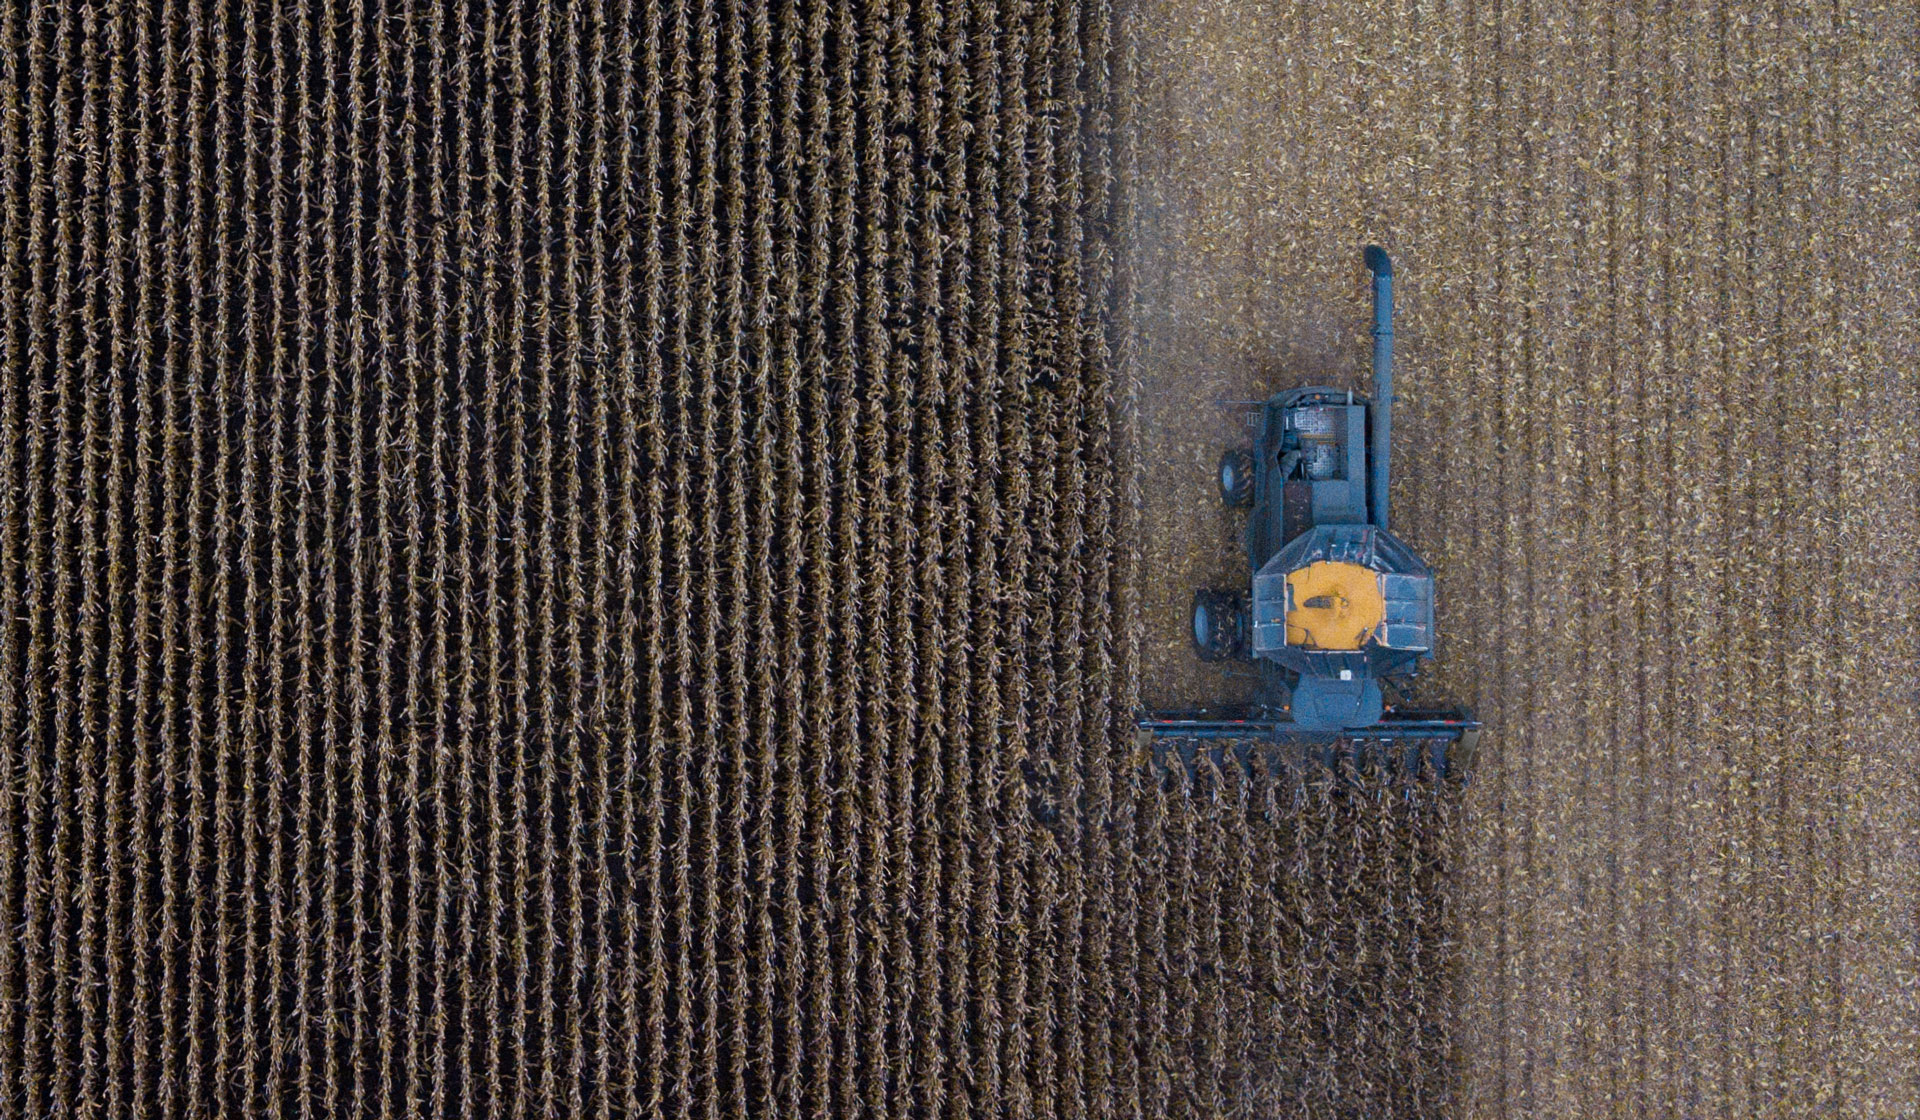 An overhead view of a harvesting machine collecting grain.